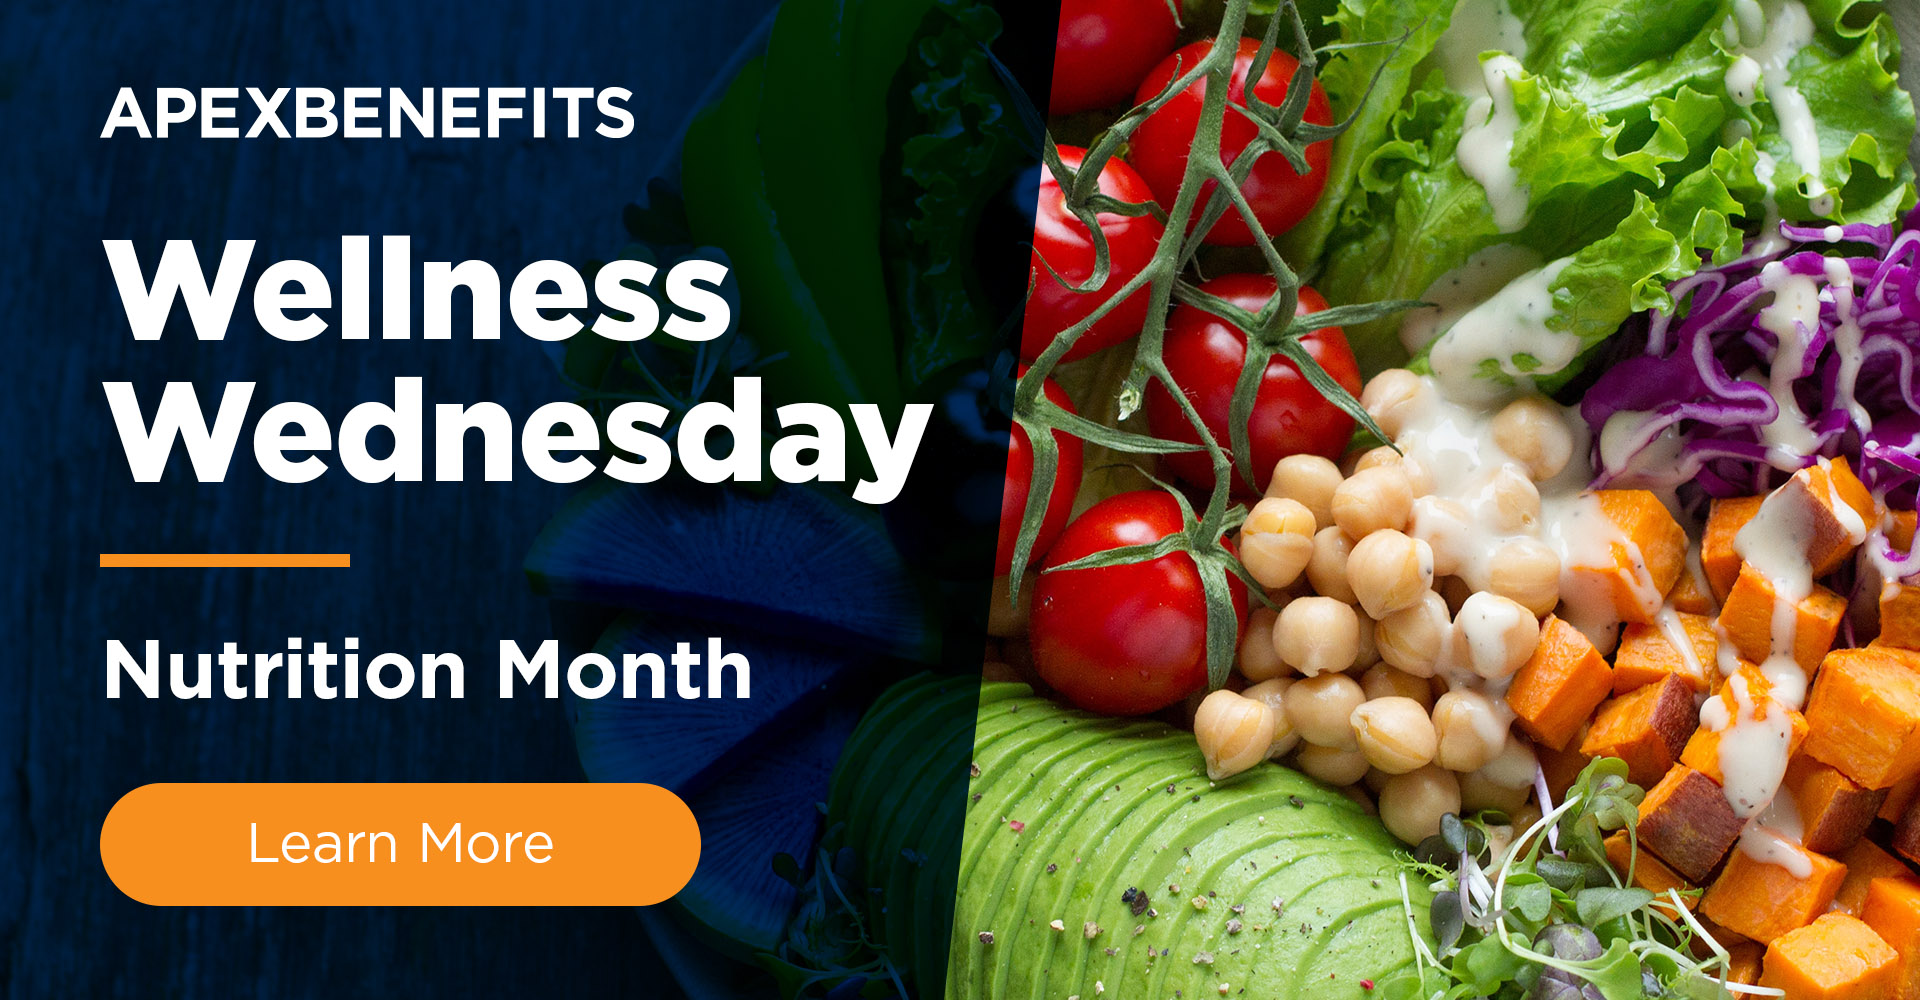 Wellness Wednesday: Pick Your Plate